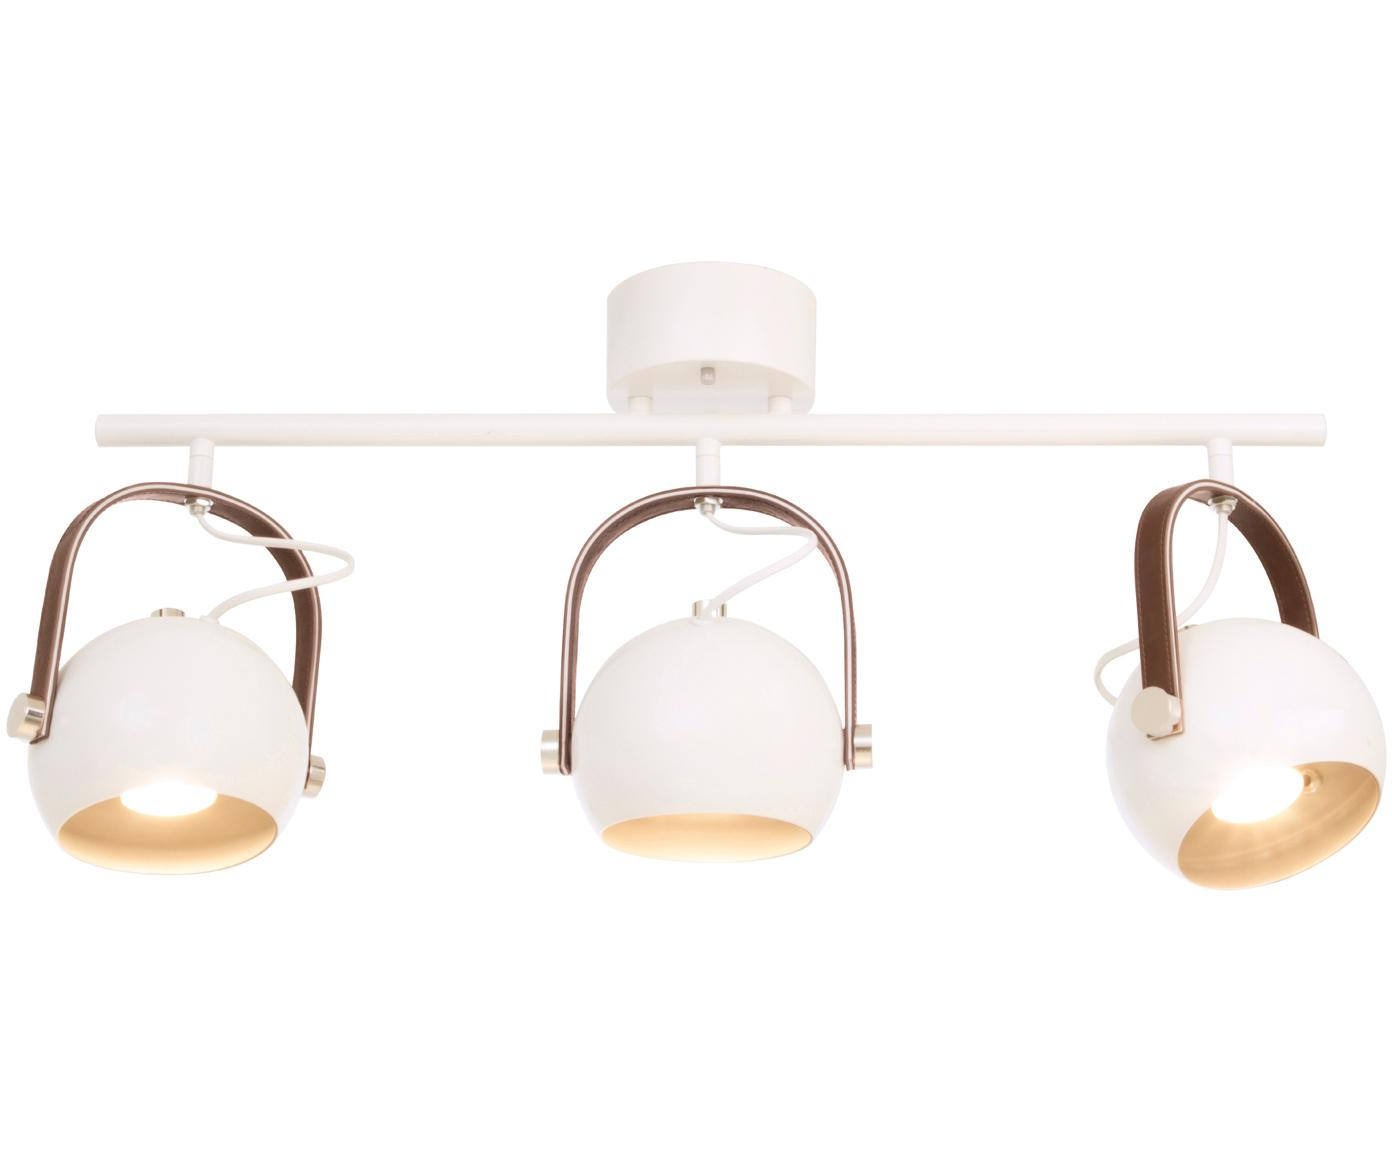 Plafondlamp Bow in industrieel design, Wit, 76 x 32 cm